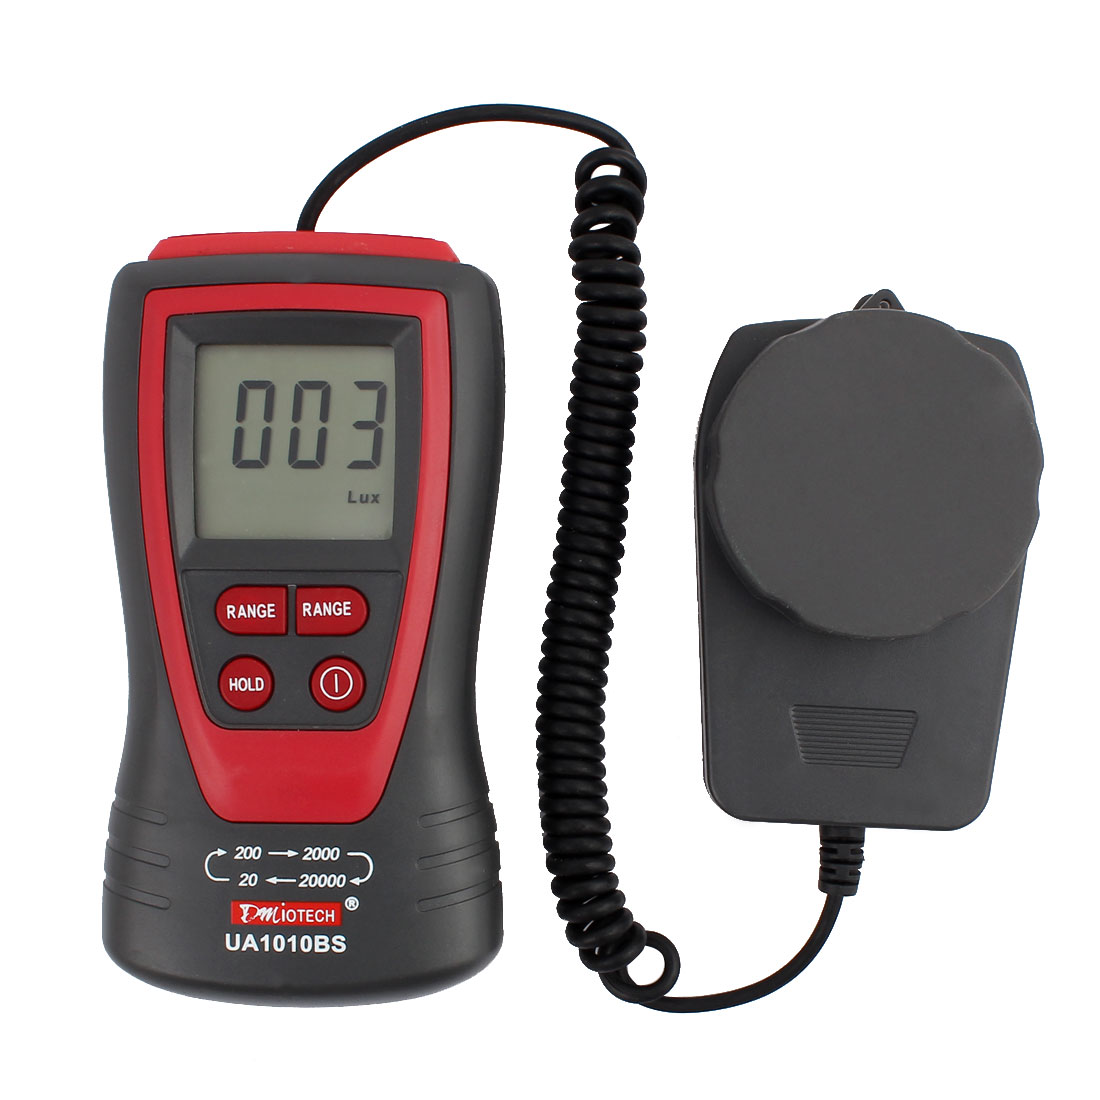 20,000 Lux Digital Light Meter Luxmeter Luminometer Photometer High Accuracy LCD Display